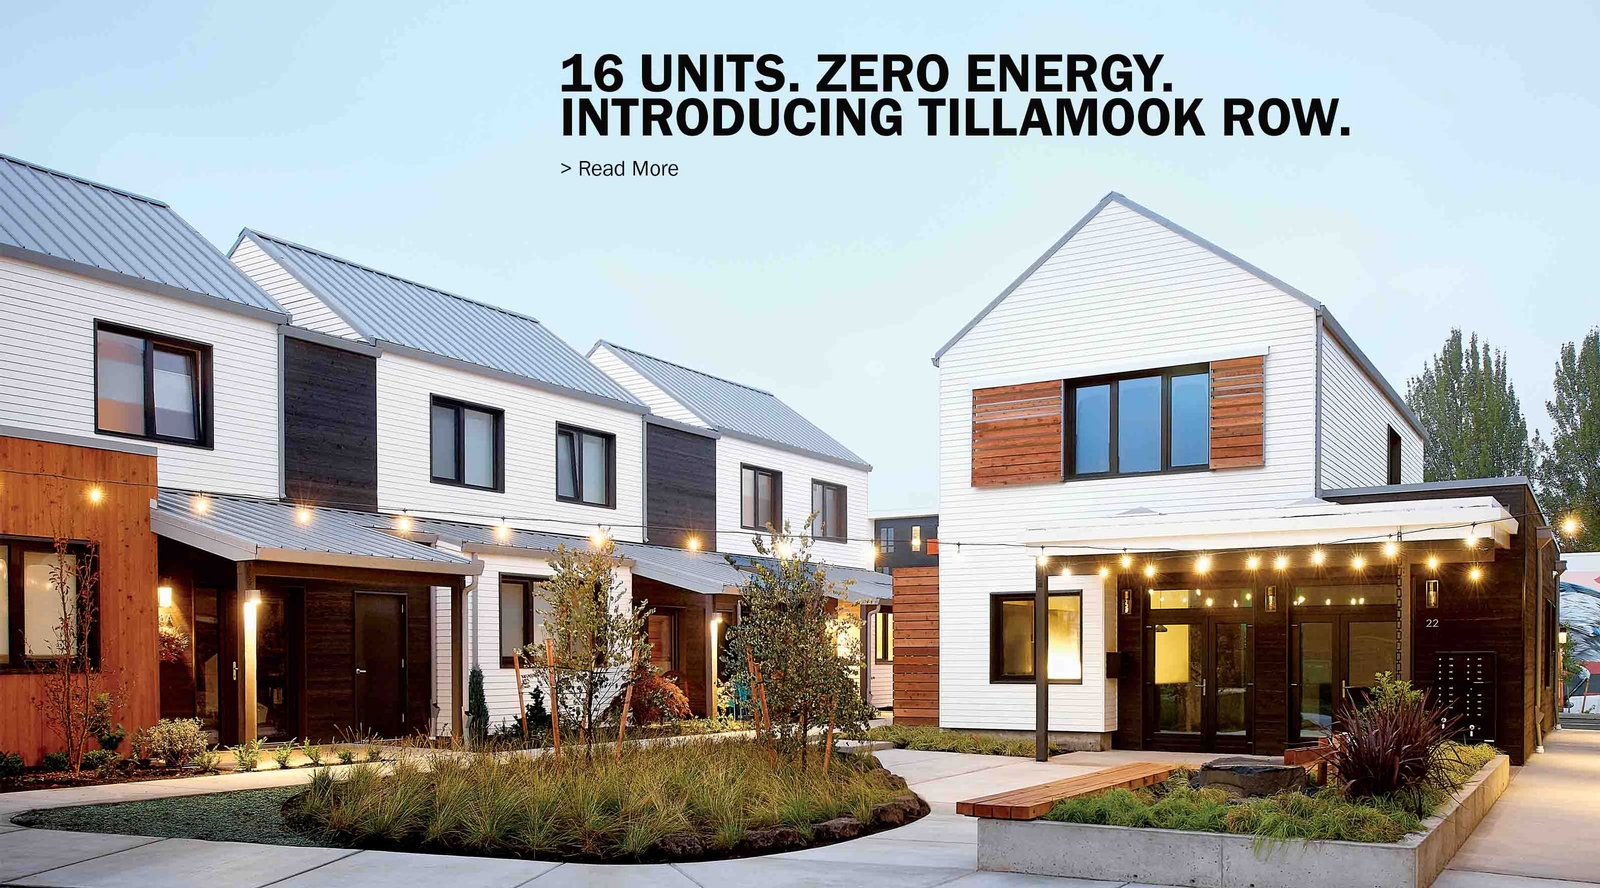 Tillamook Row Zero Energy Community